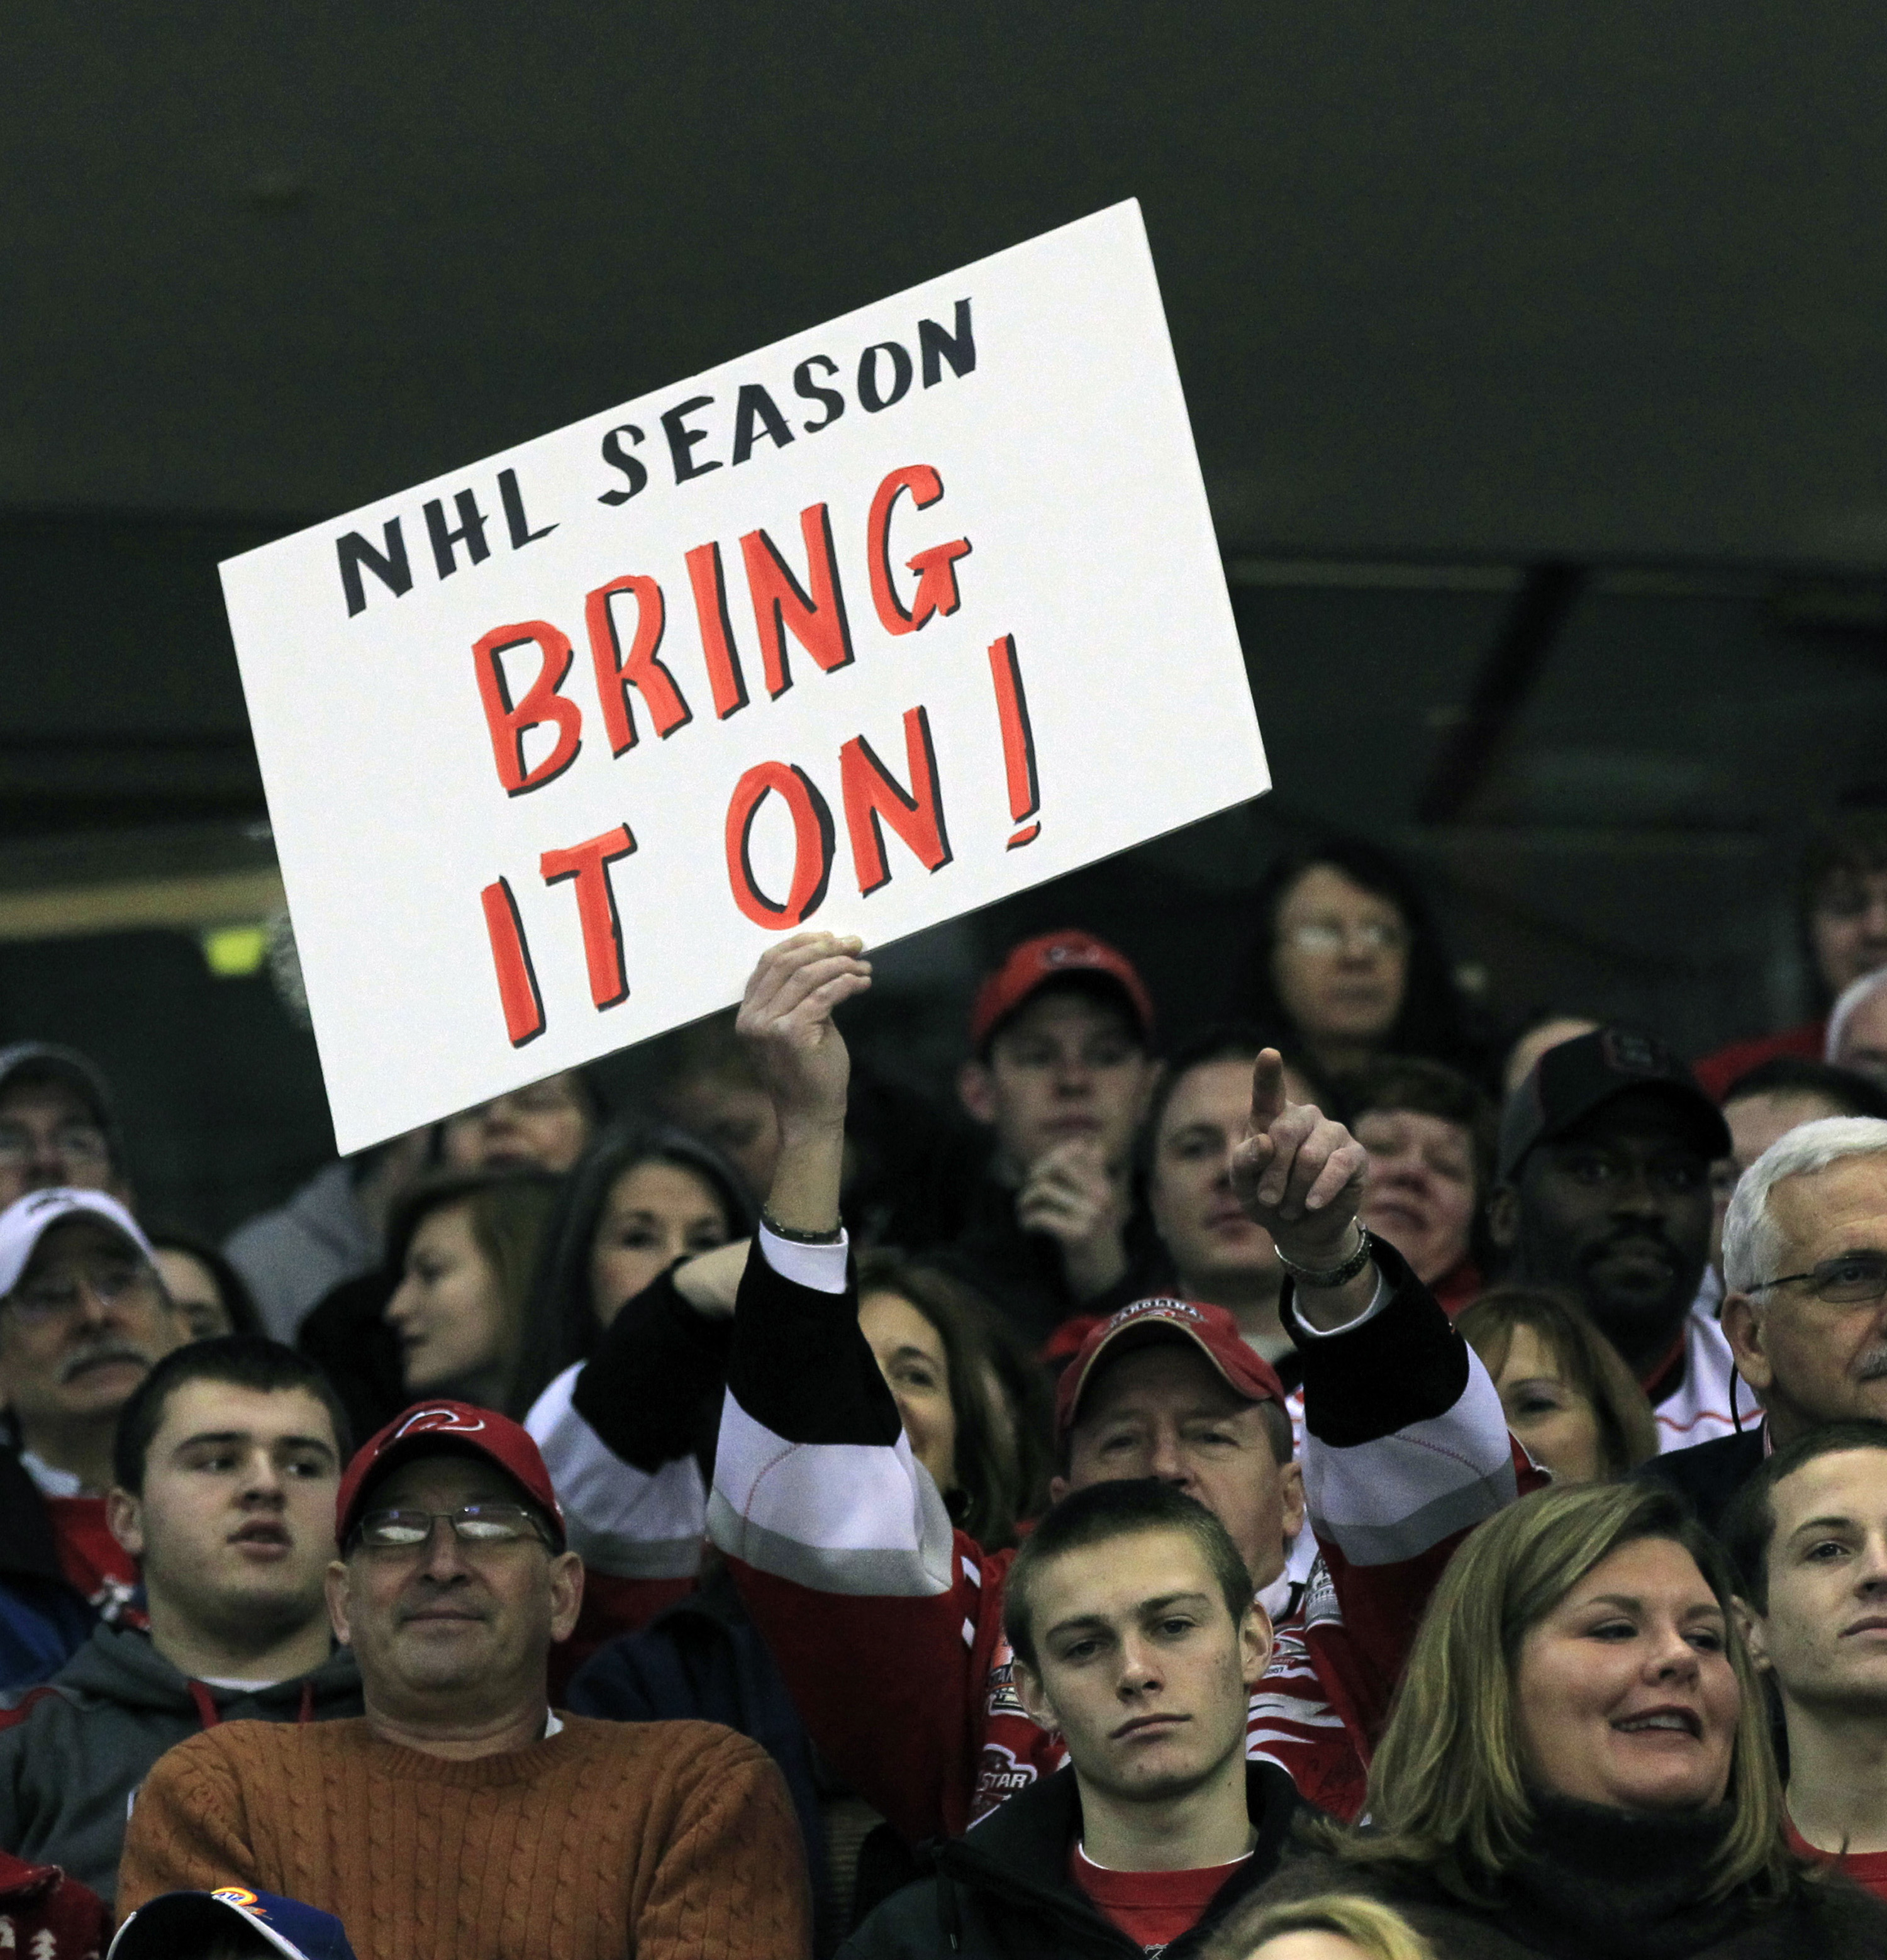 NHL fan holds up his sign voicing his opinion on the lockout. (Chris Seward/Raleigh News & Observer/MCT via Getty Images)